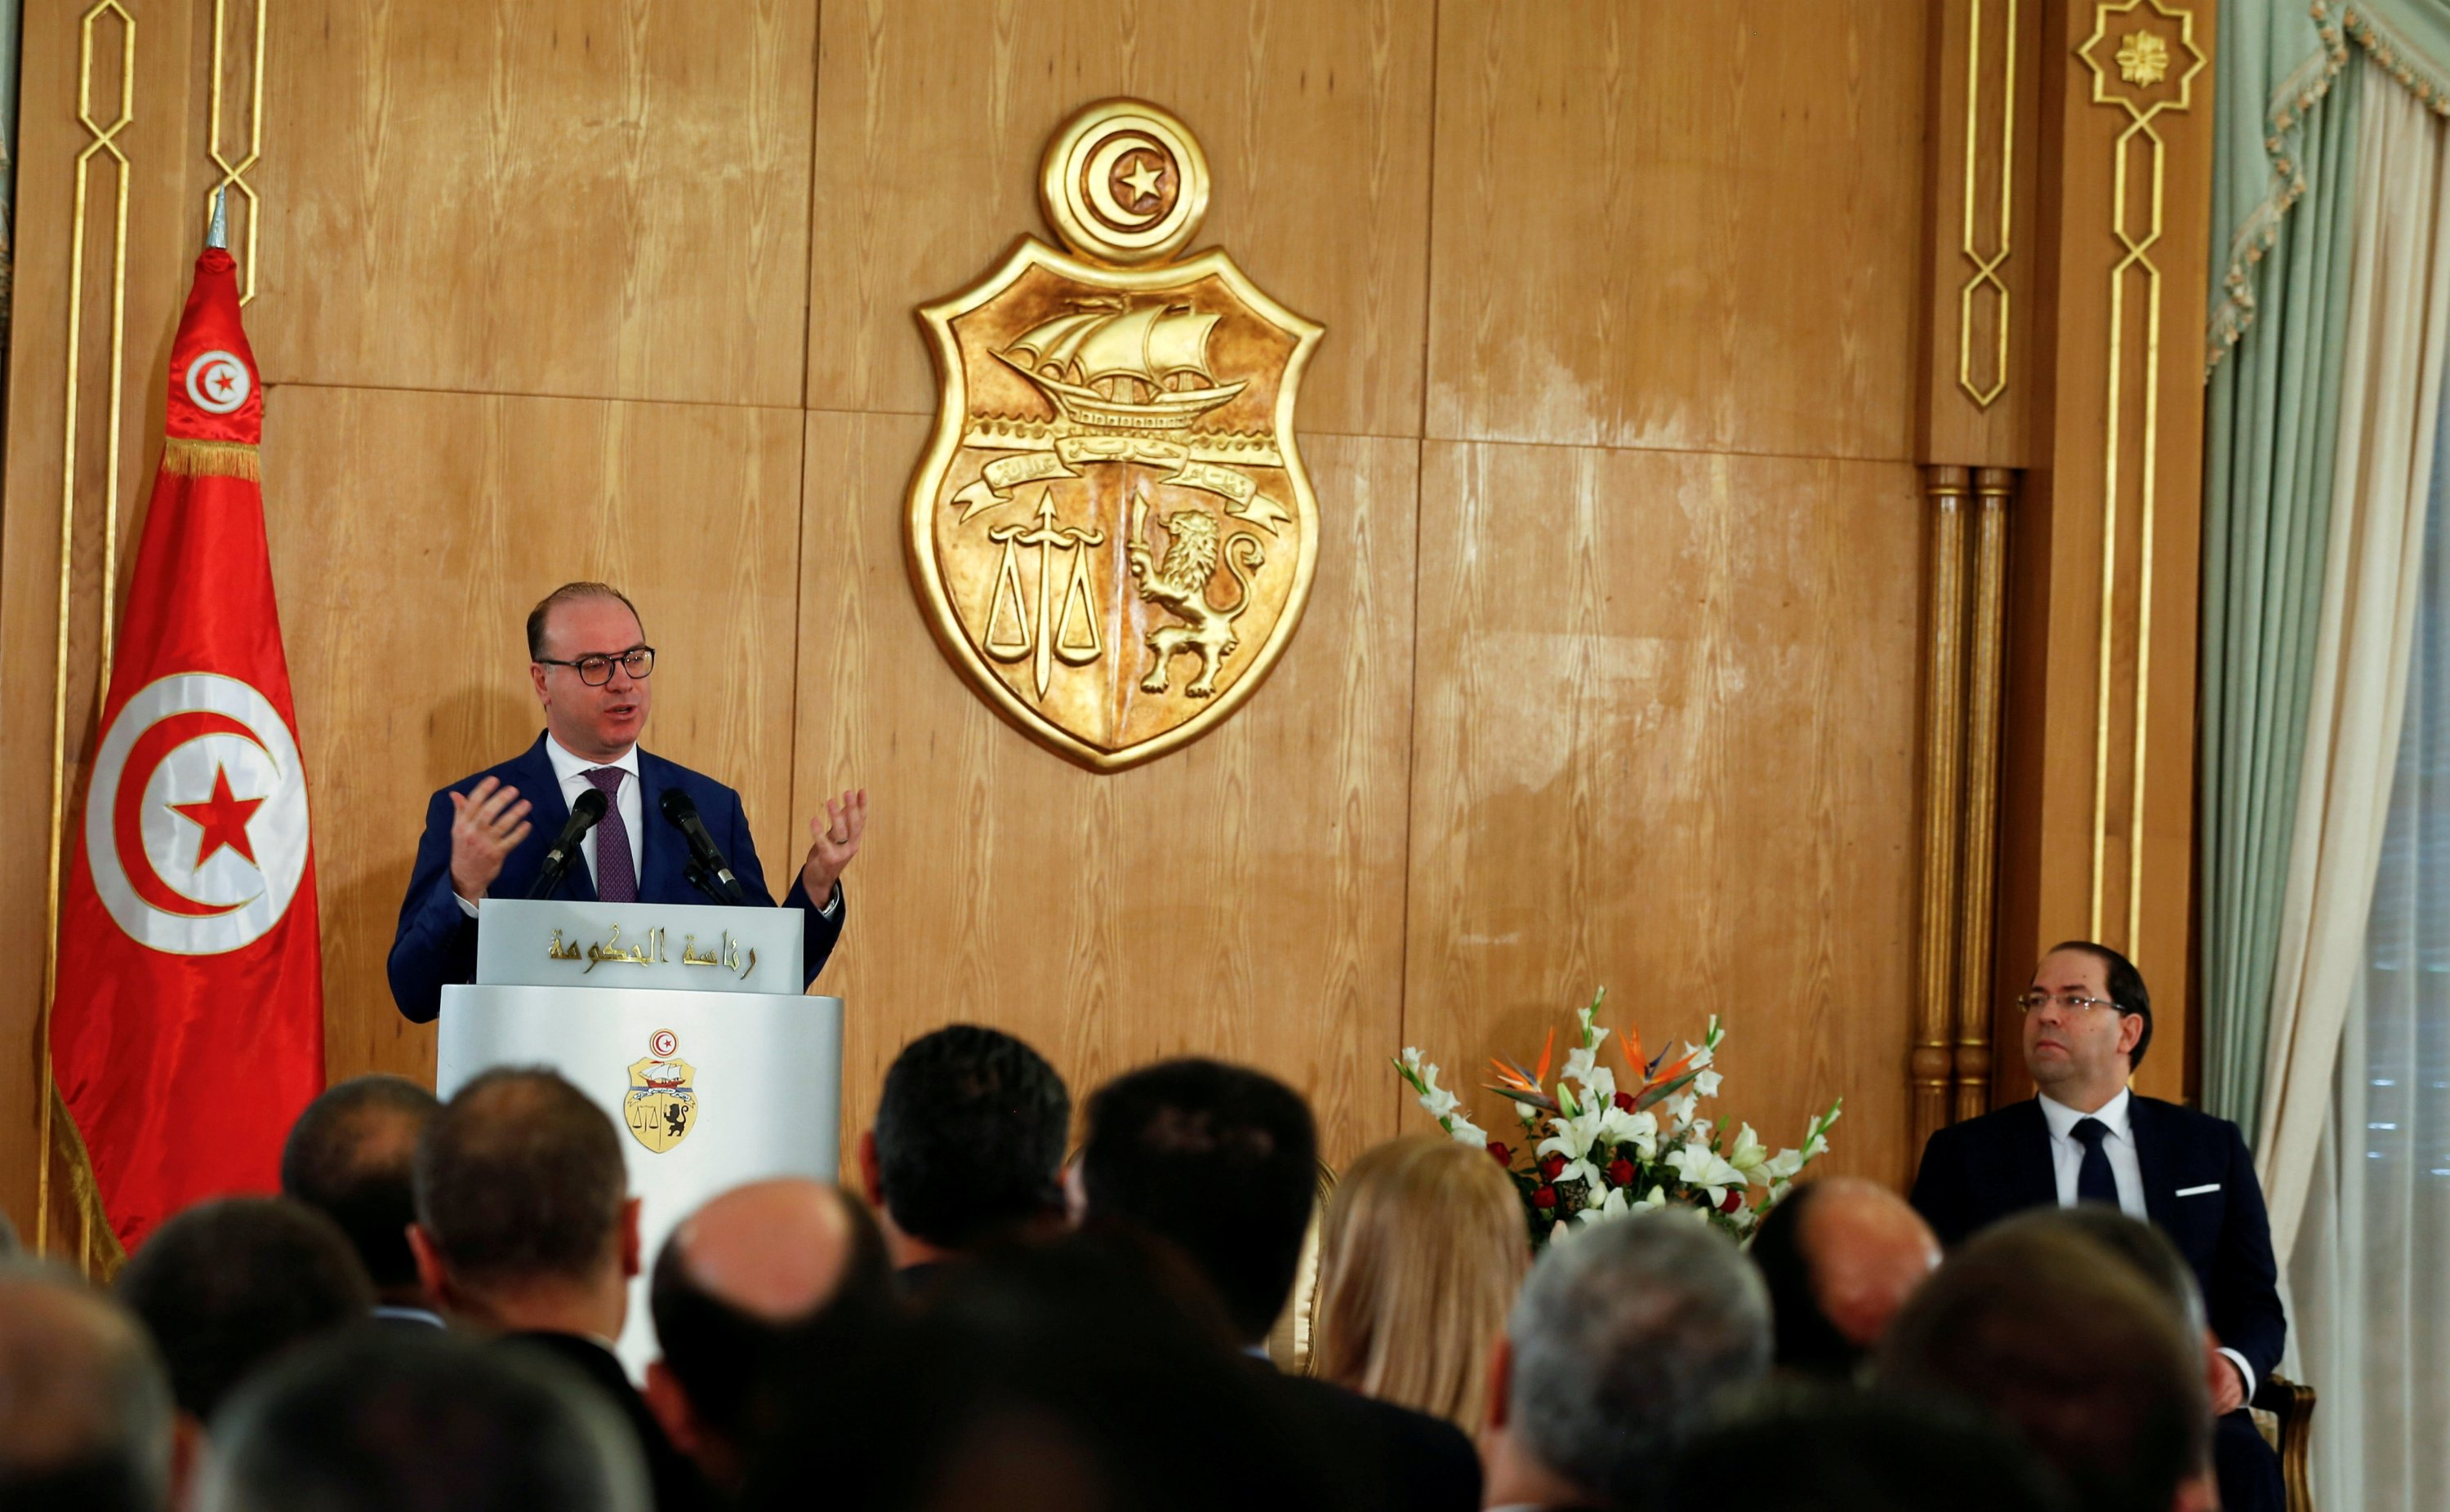 Tunisia's Prime Minister Elyes Fakhfakh speaks next to his predecessor Youssef Chahed during a handover ceremony in Tunis, Tunisia, Feb. 28, 2020. (REUTERS Photo)